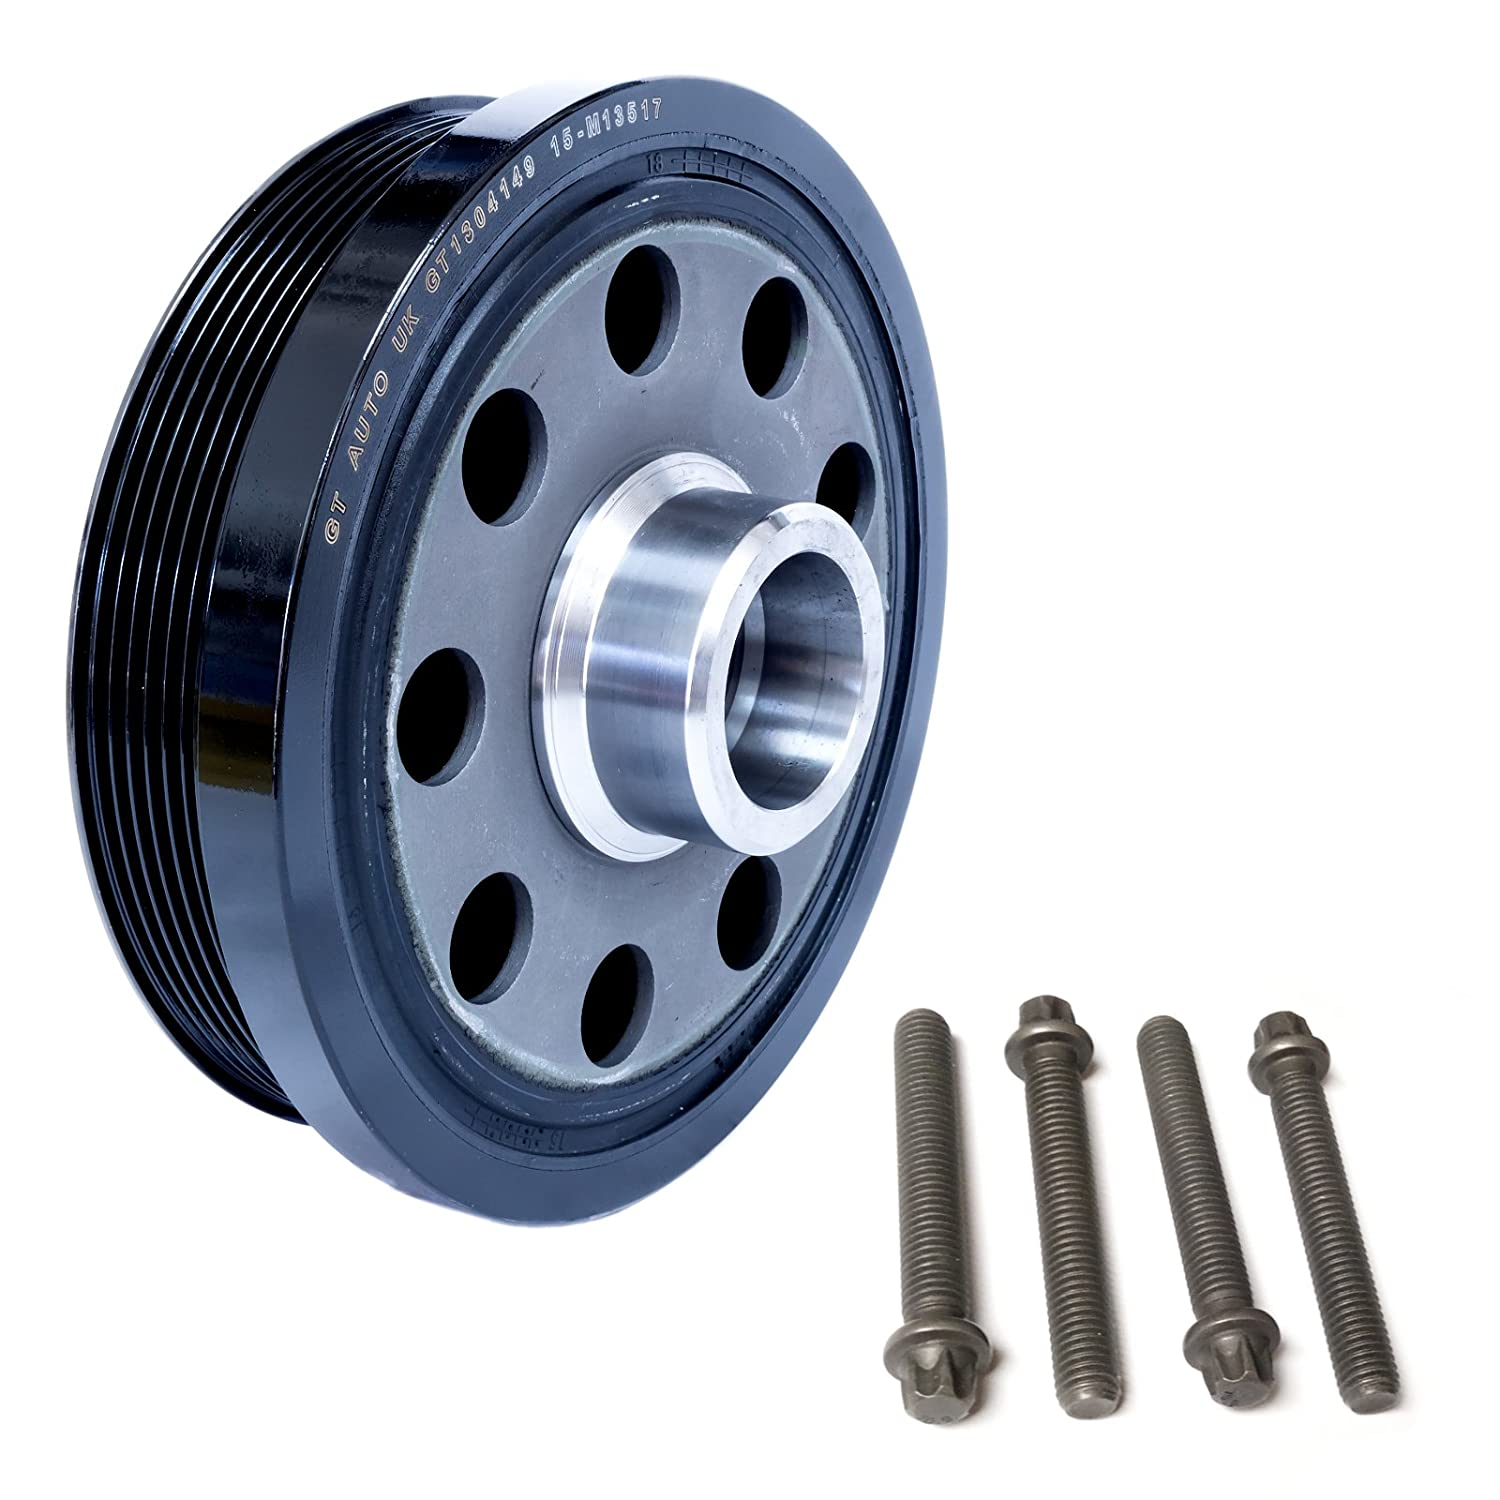 GT Automotive GT1304049K Crankshaft Pulley Vibration Damper Kit GT Automotive England Ltd